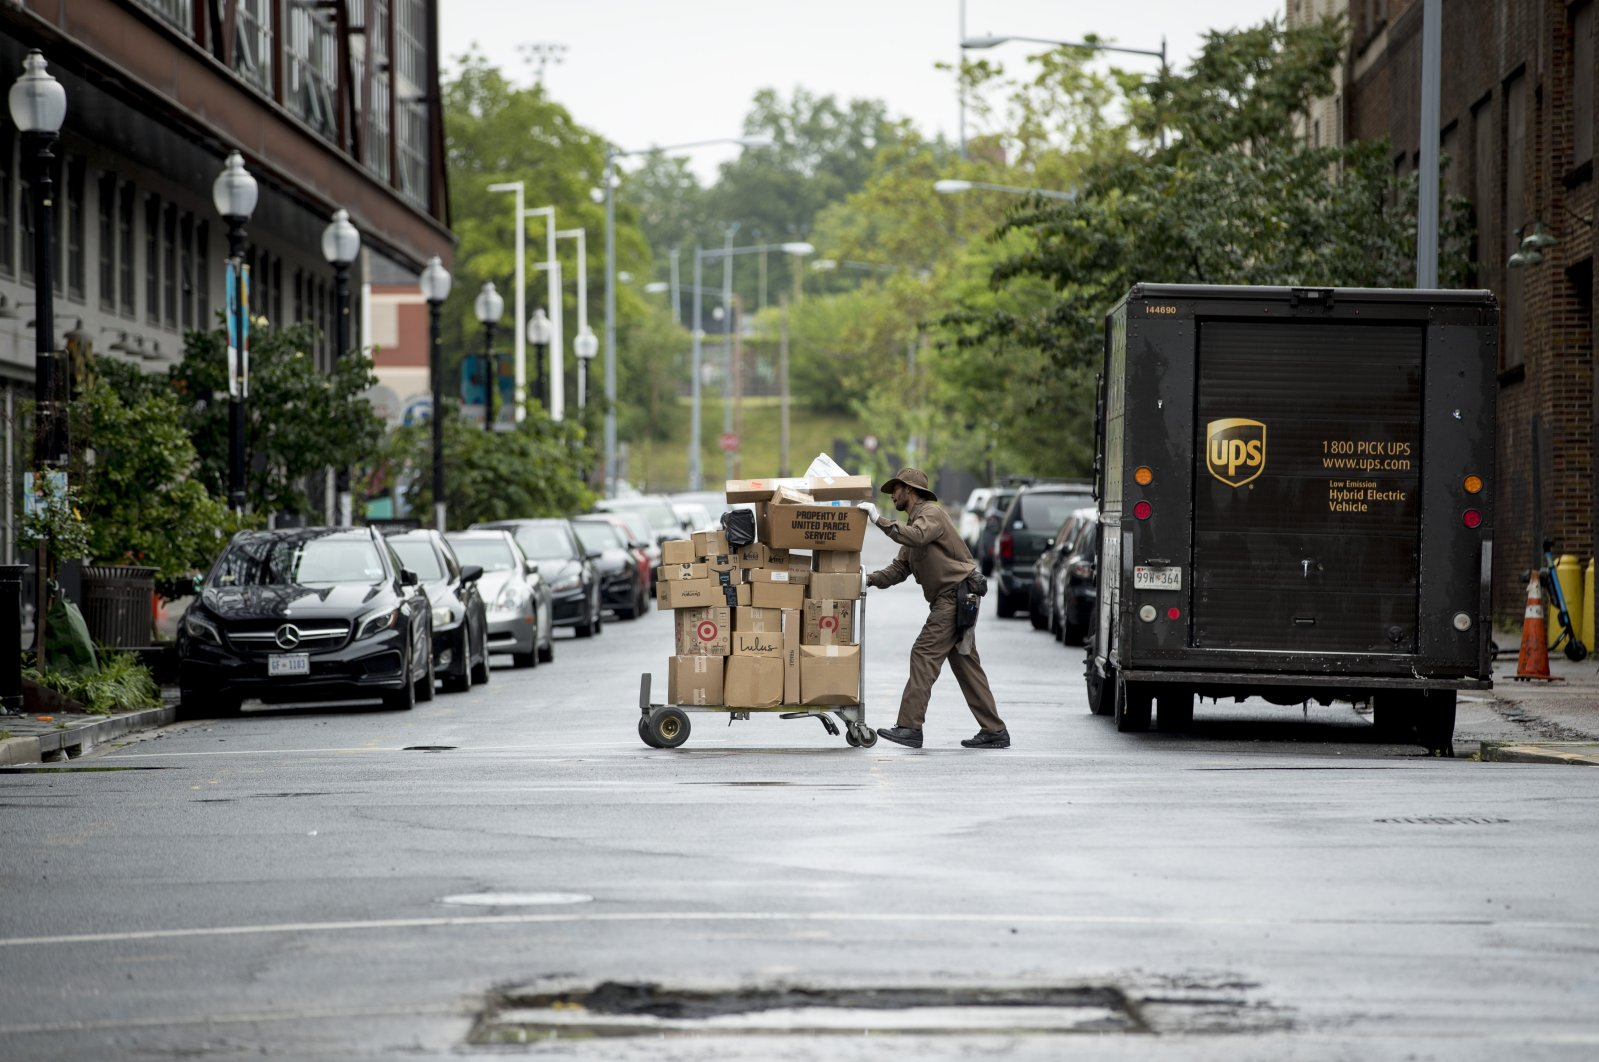 A delivery man pushes a cart full of packages to deliver to an apartment building on an almost empty street in the Shaw neighborhood of Washington, D.C., U.S., May 22, 2020. (AP Photo)